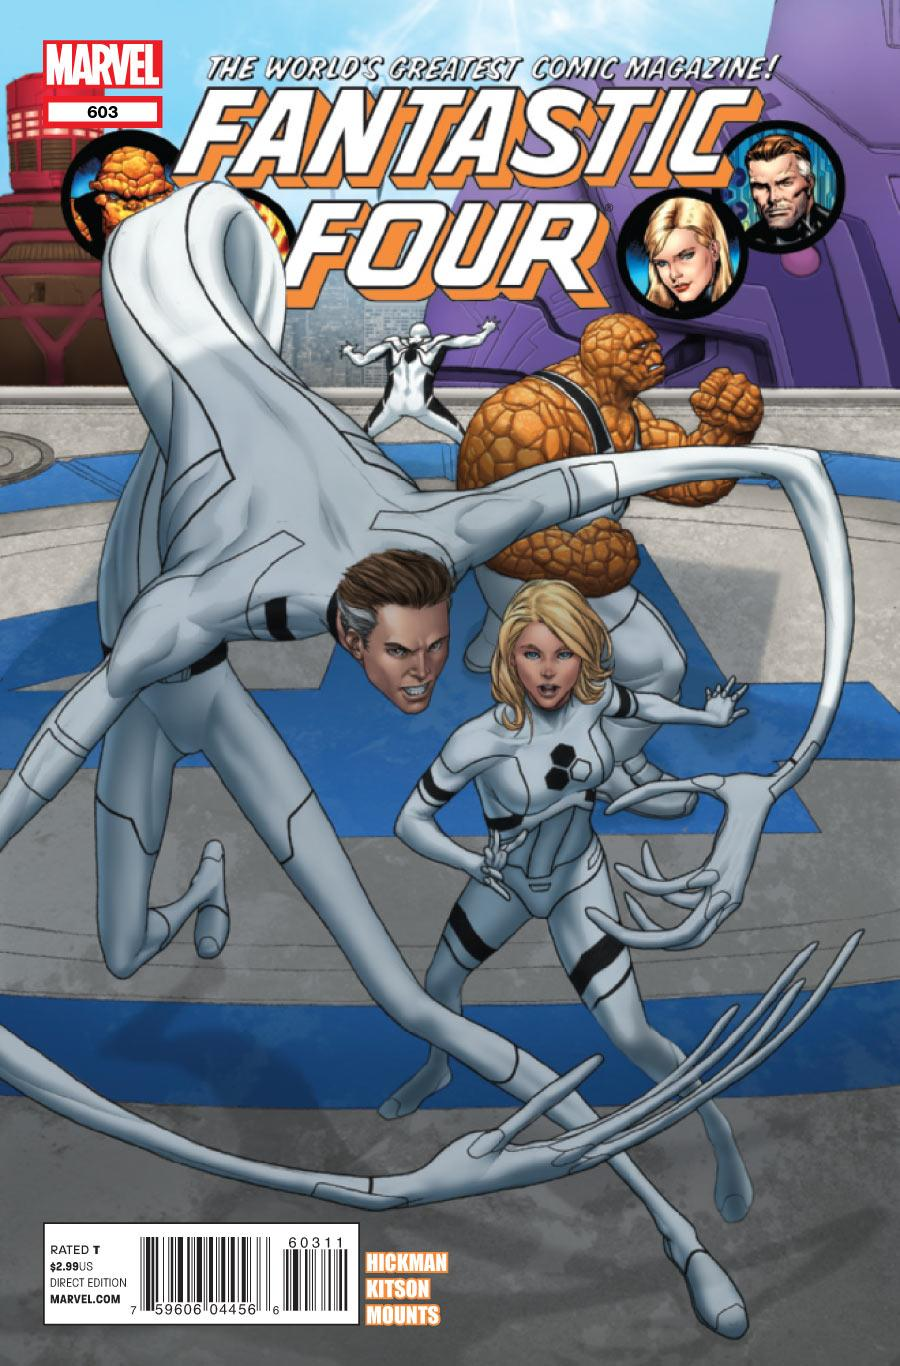 Fantastic Four Vol. 1 #603